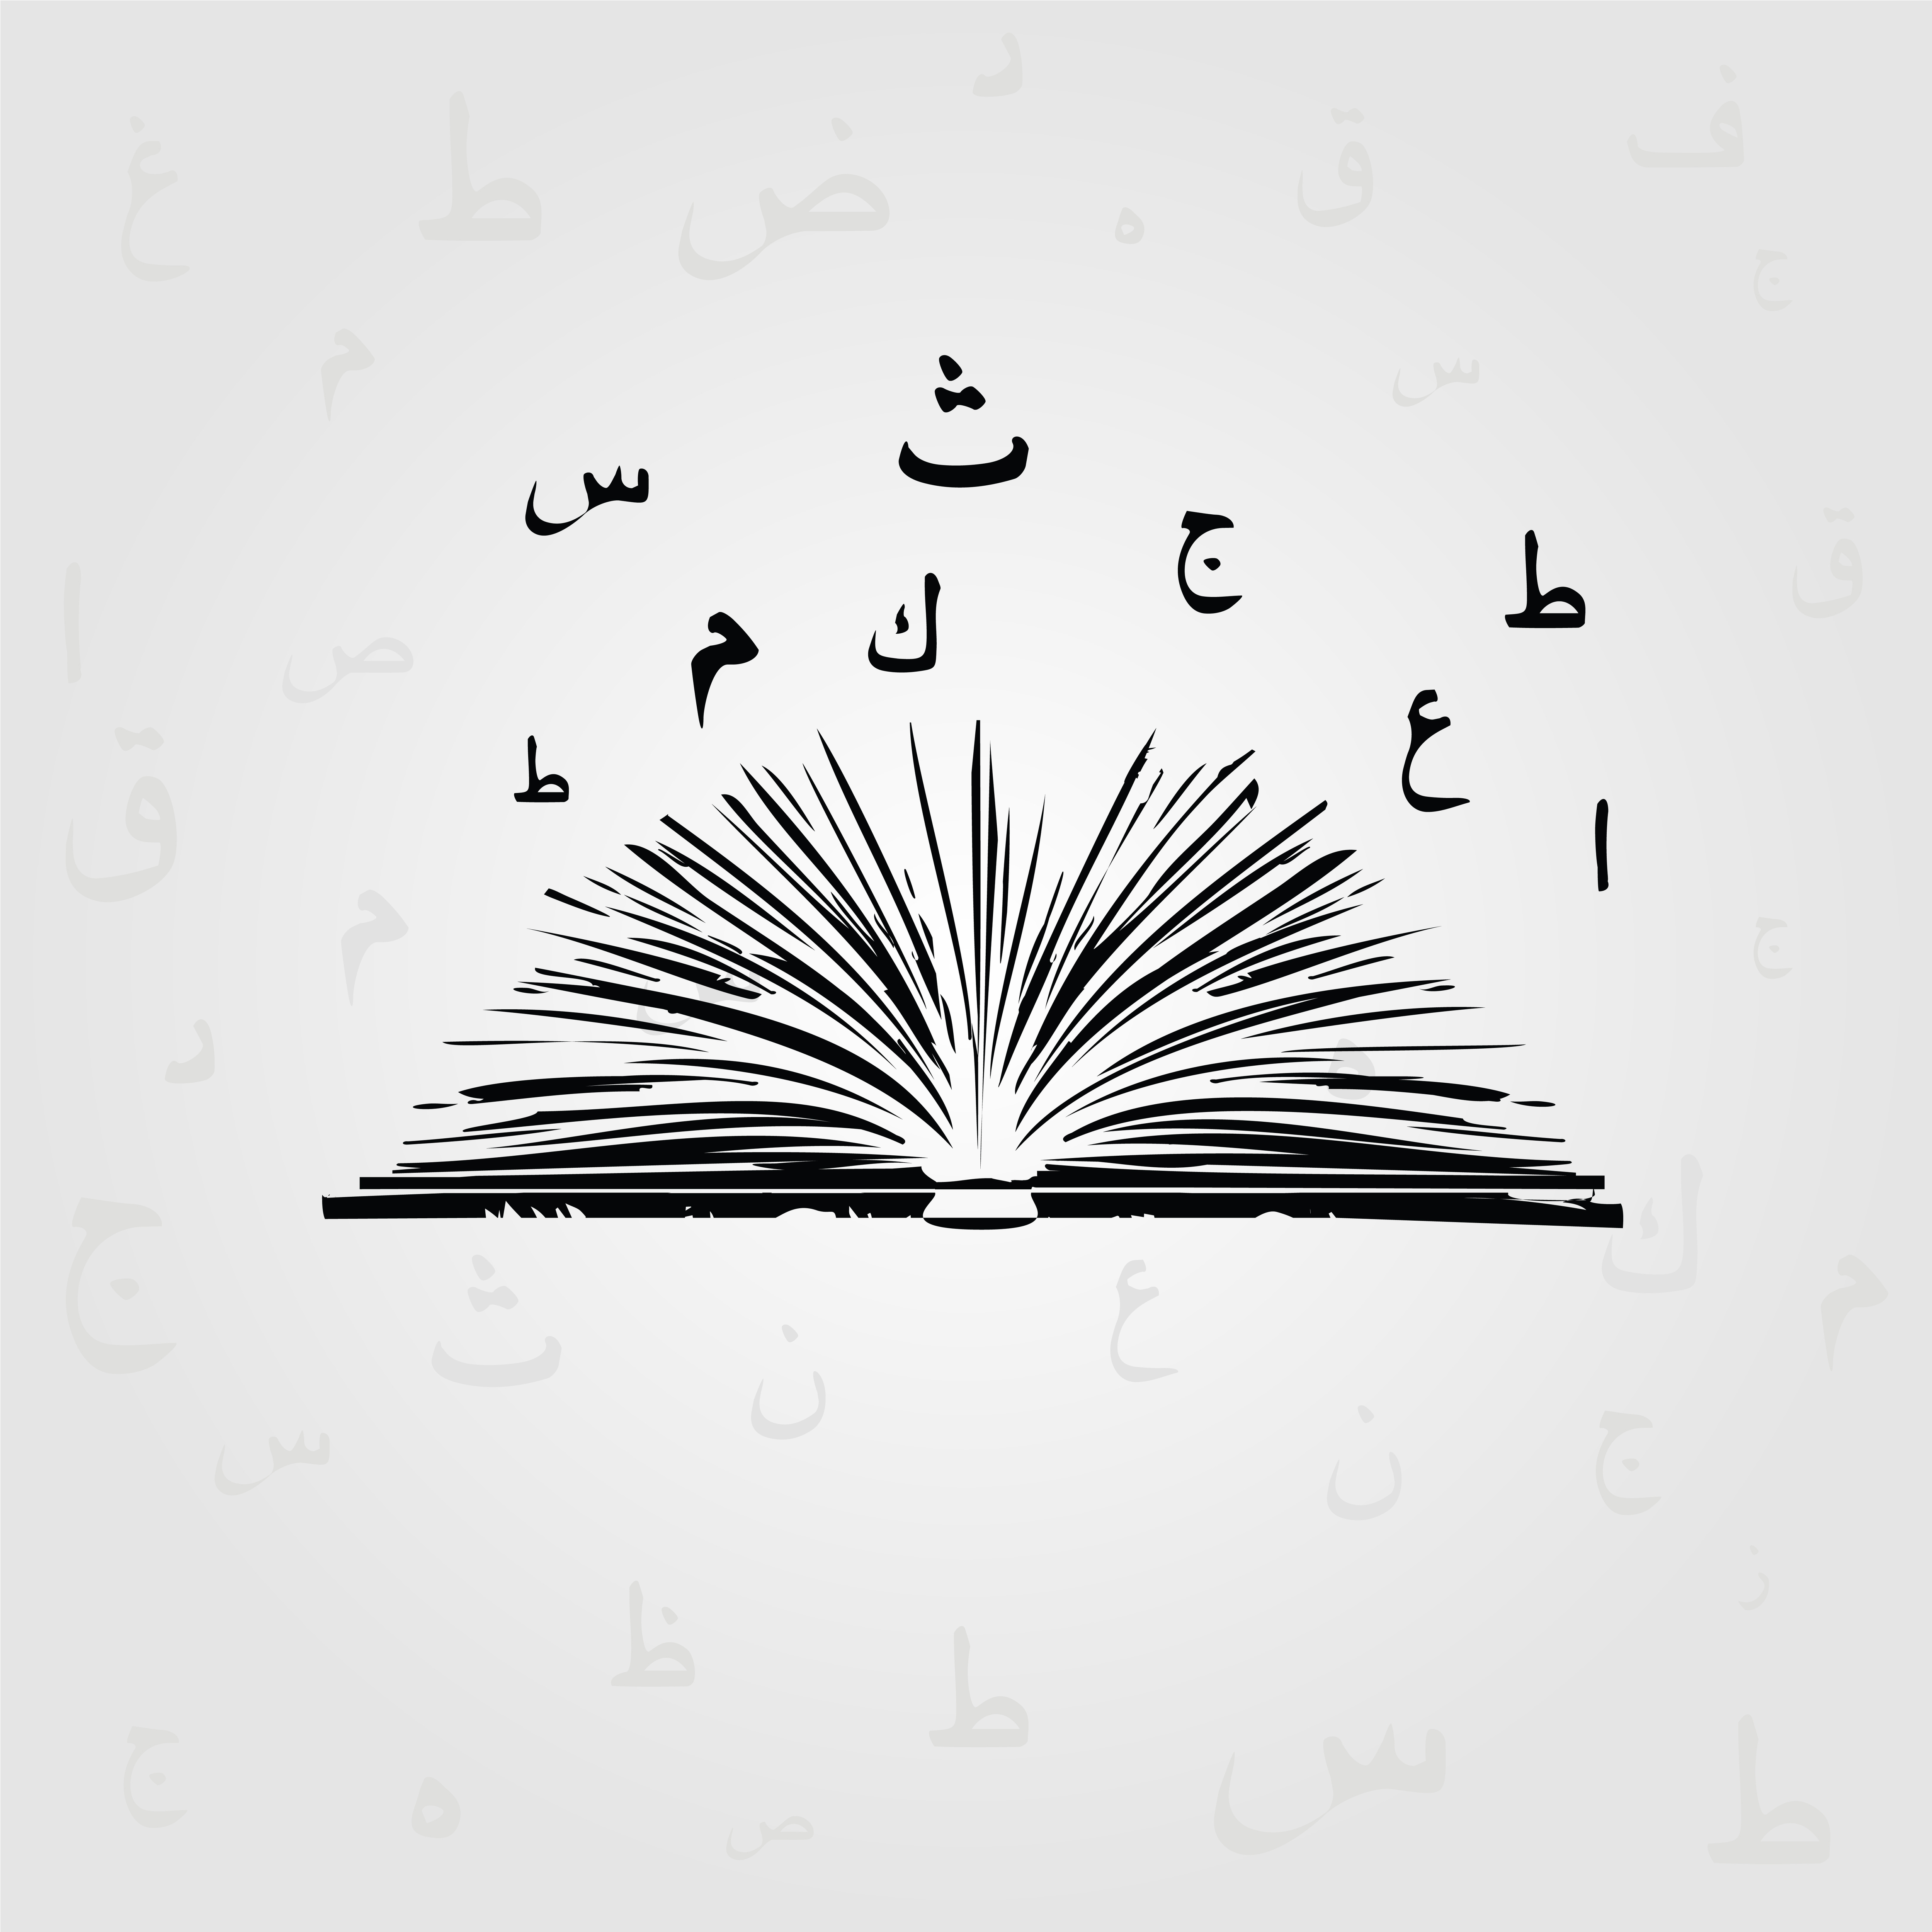 Looking to learn a new language in 2021 and don't know which to pick? Here are the reasons why that language should be Arabic.